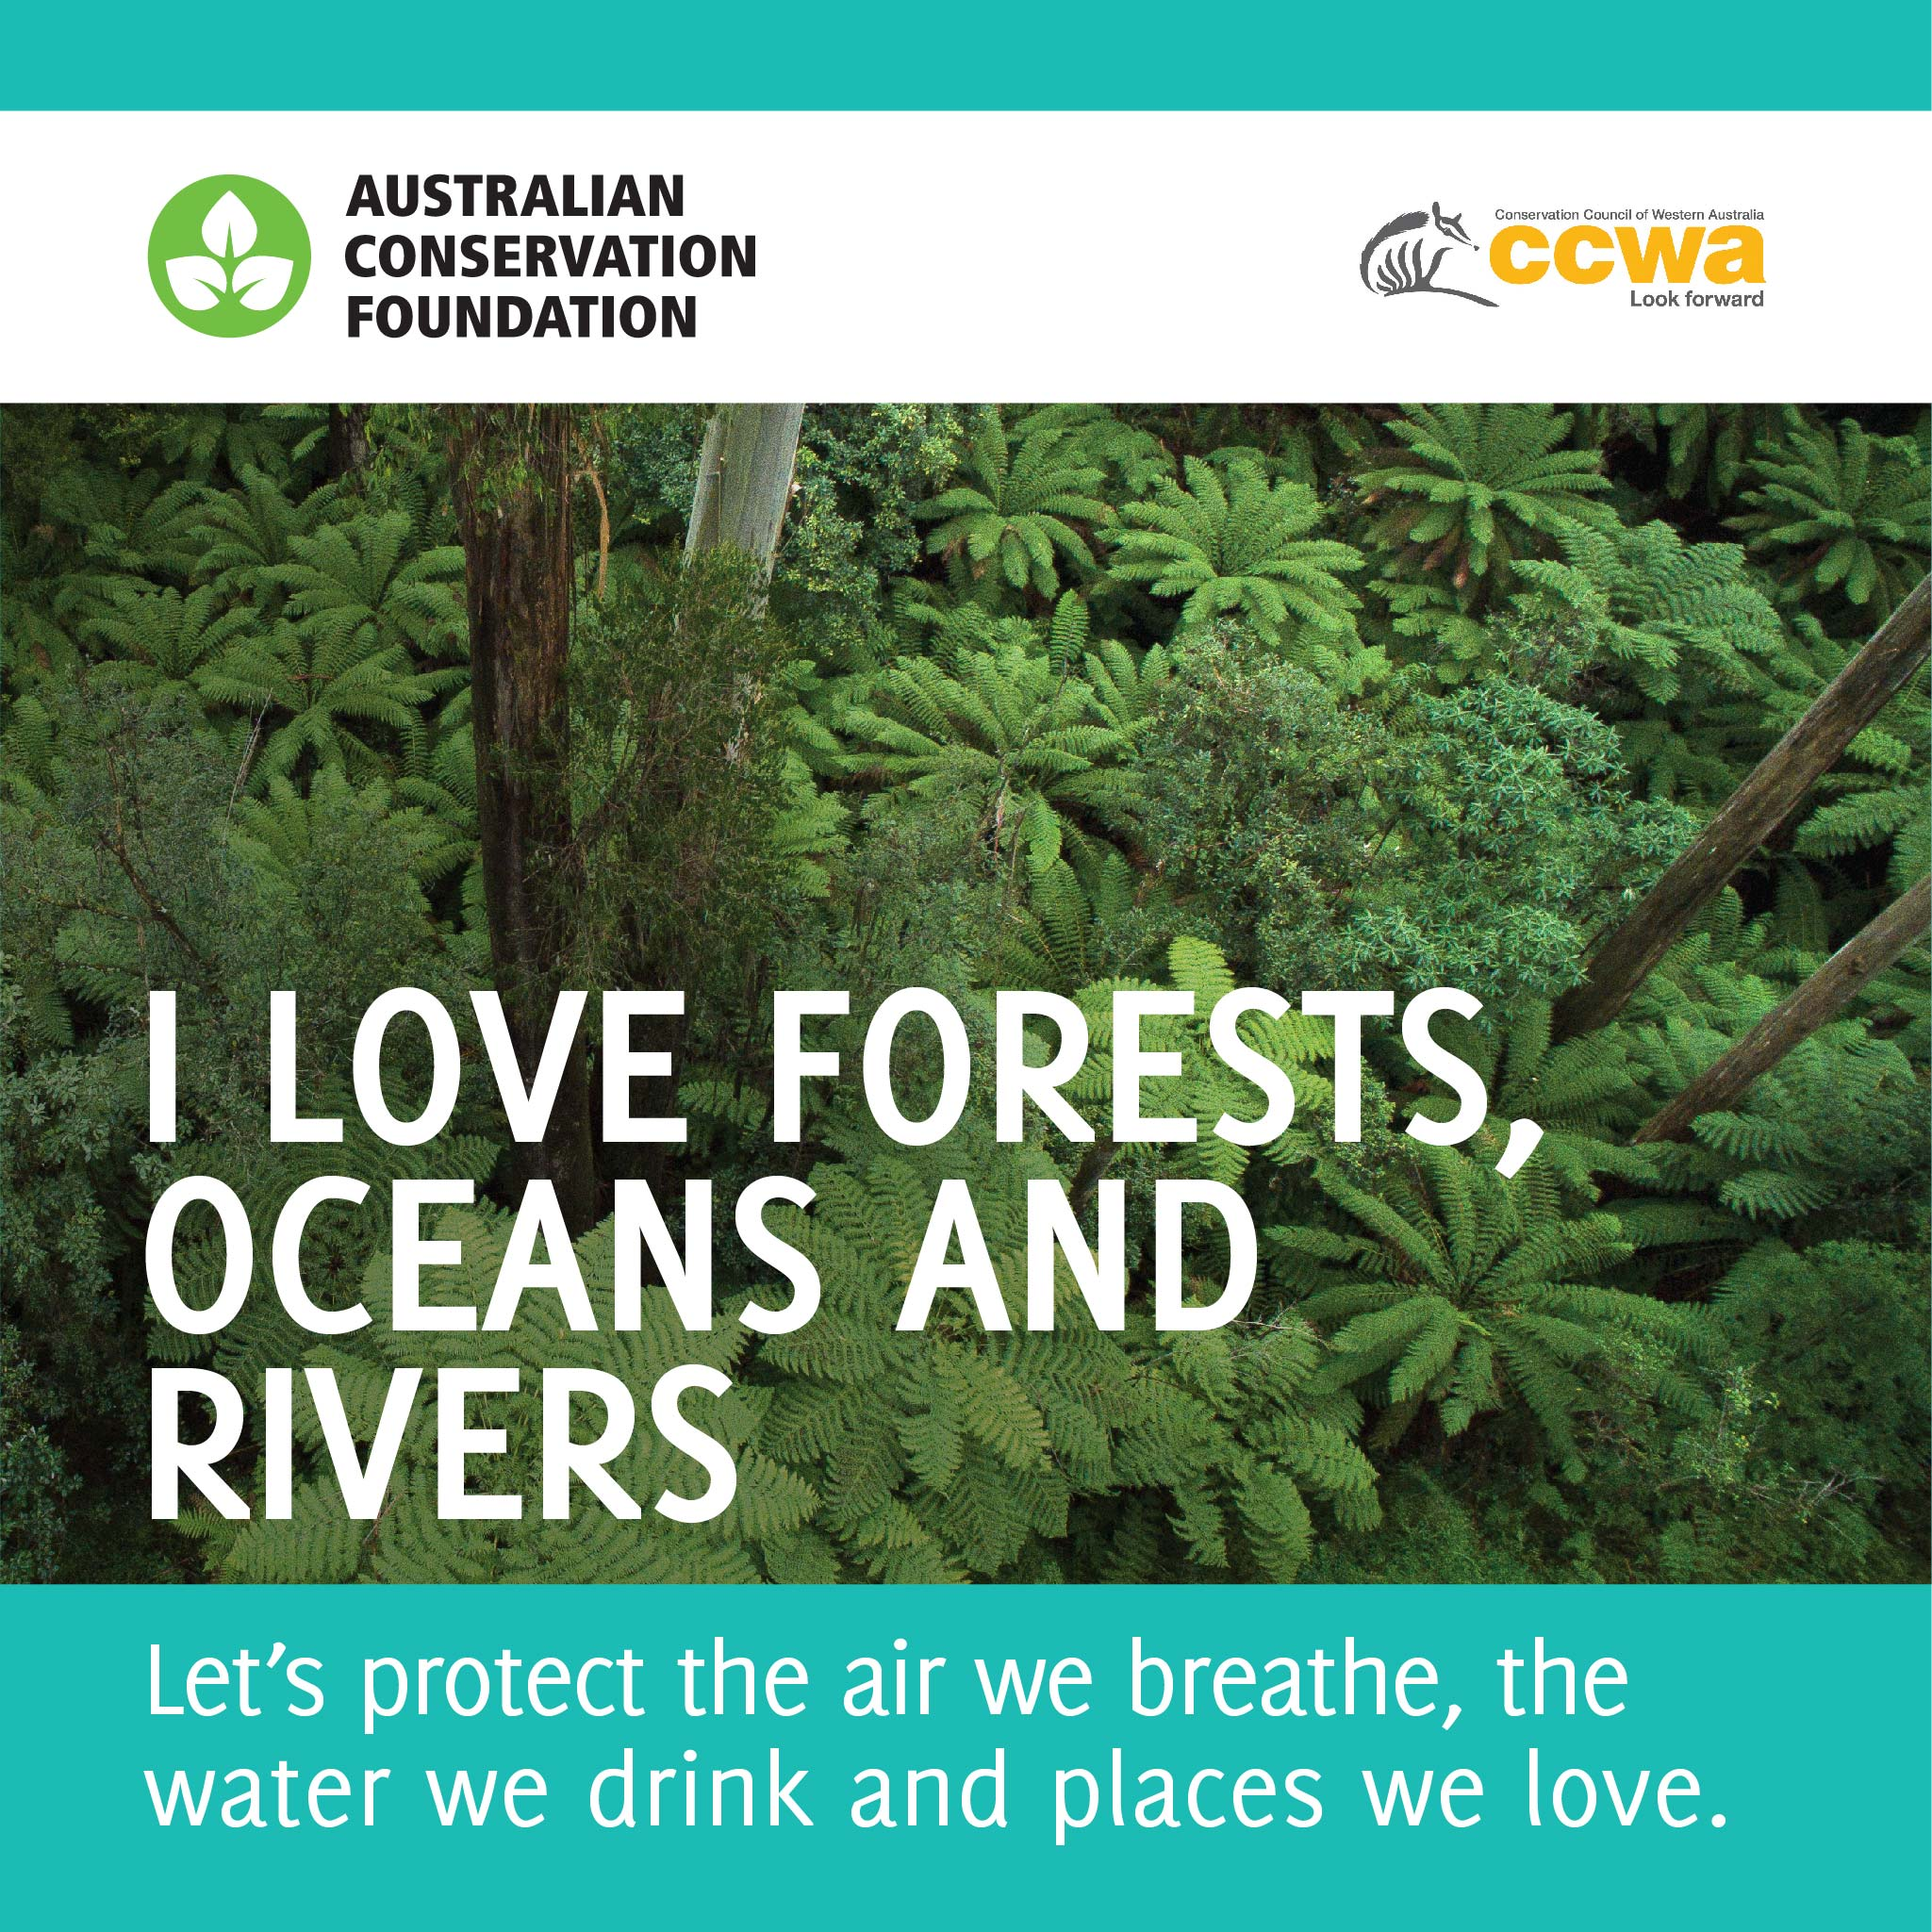 ACF_Election_shareable_2048_x_2048_px_CCWA-FOREST.jpg